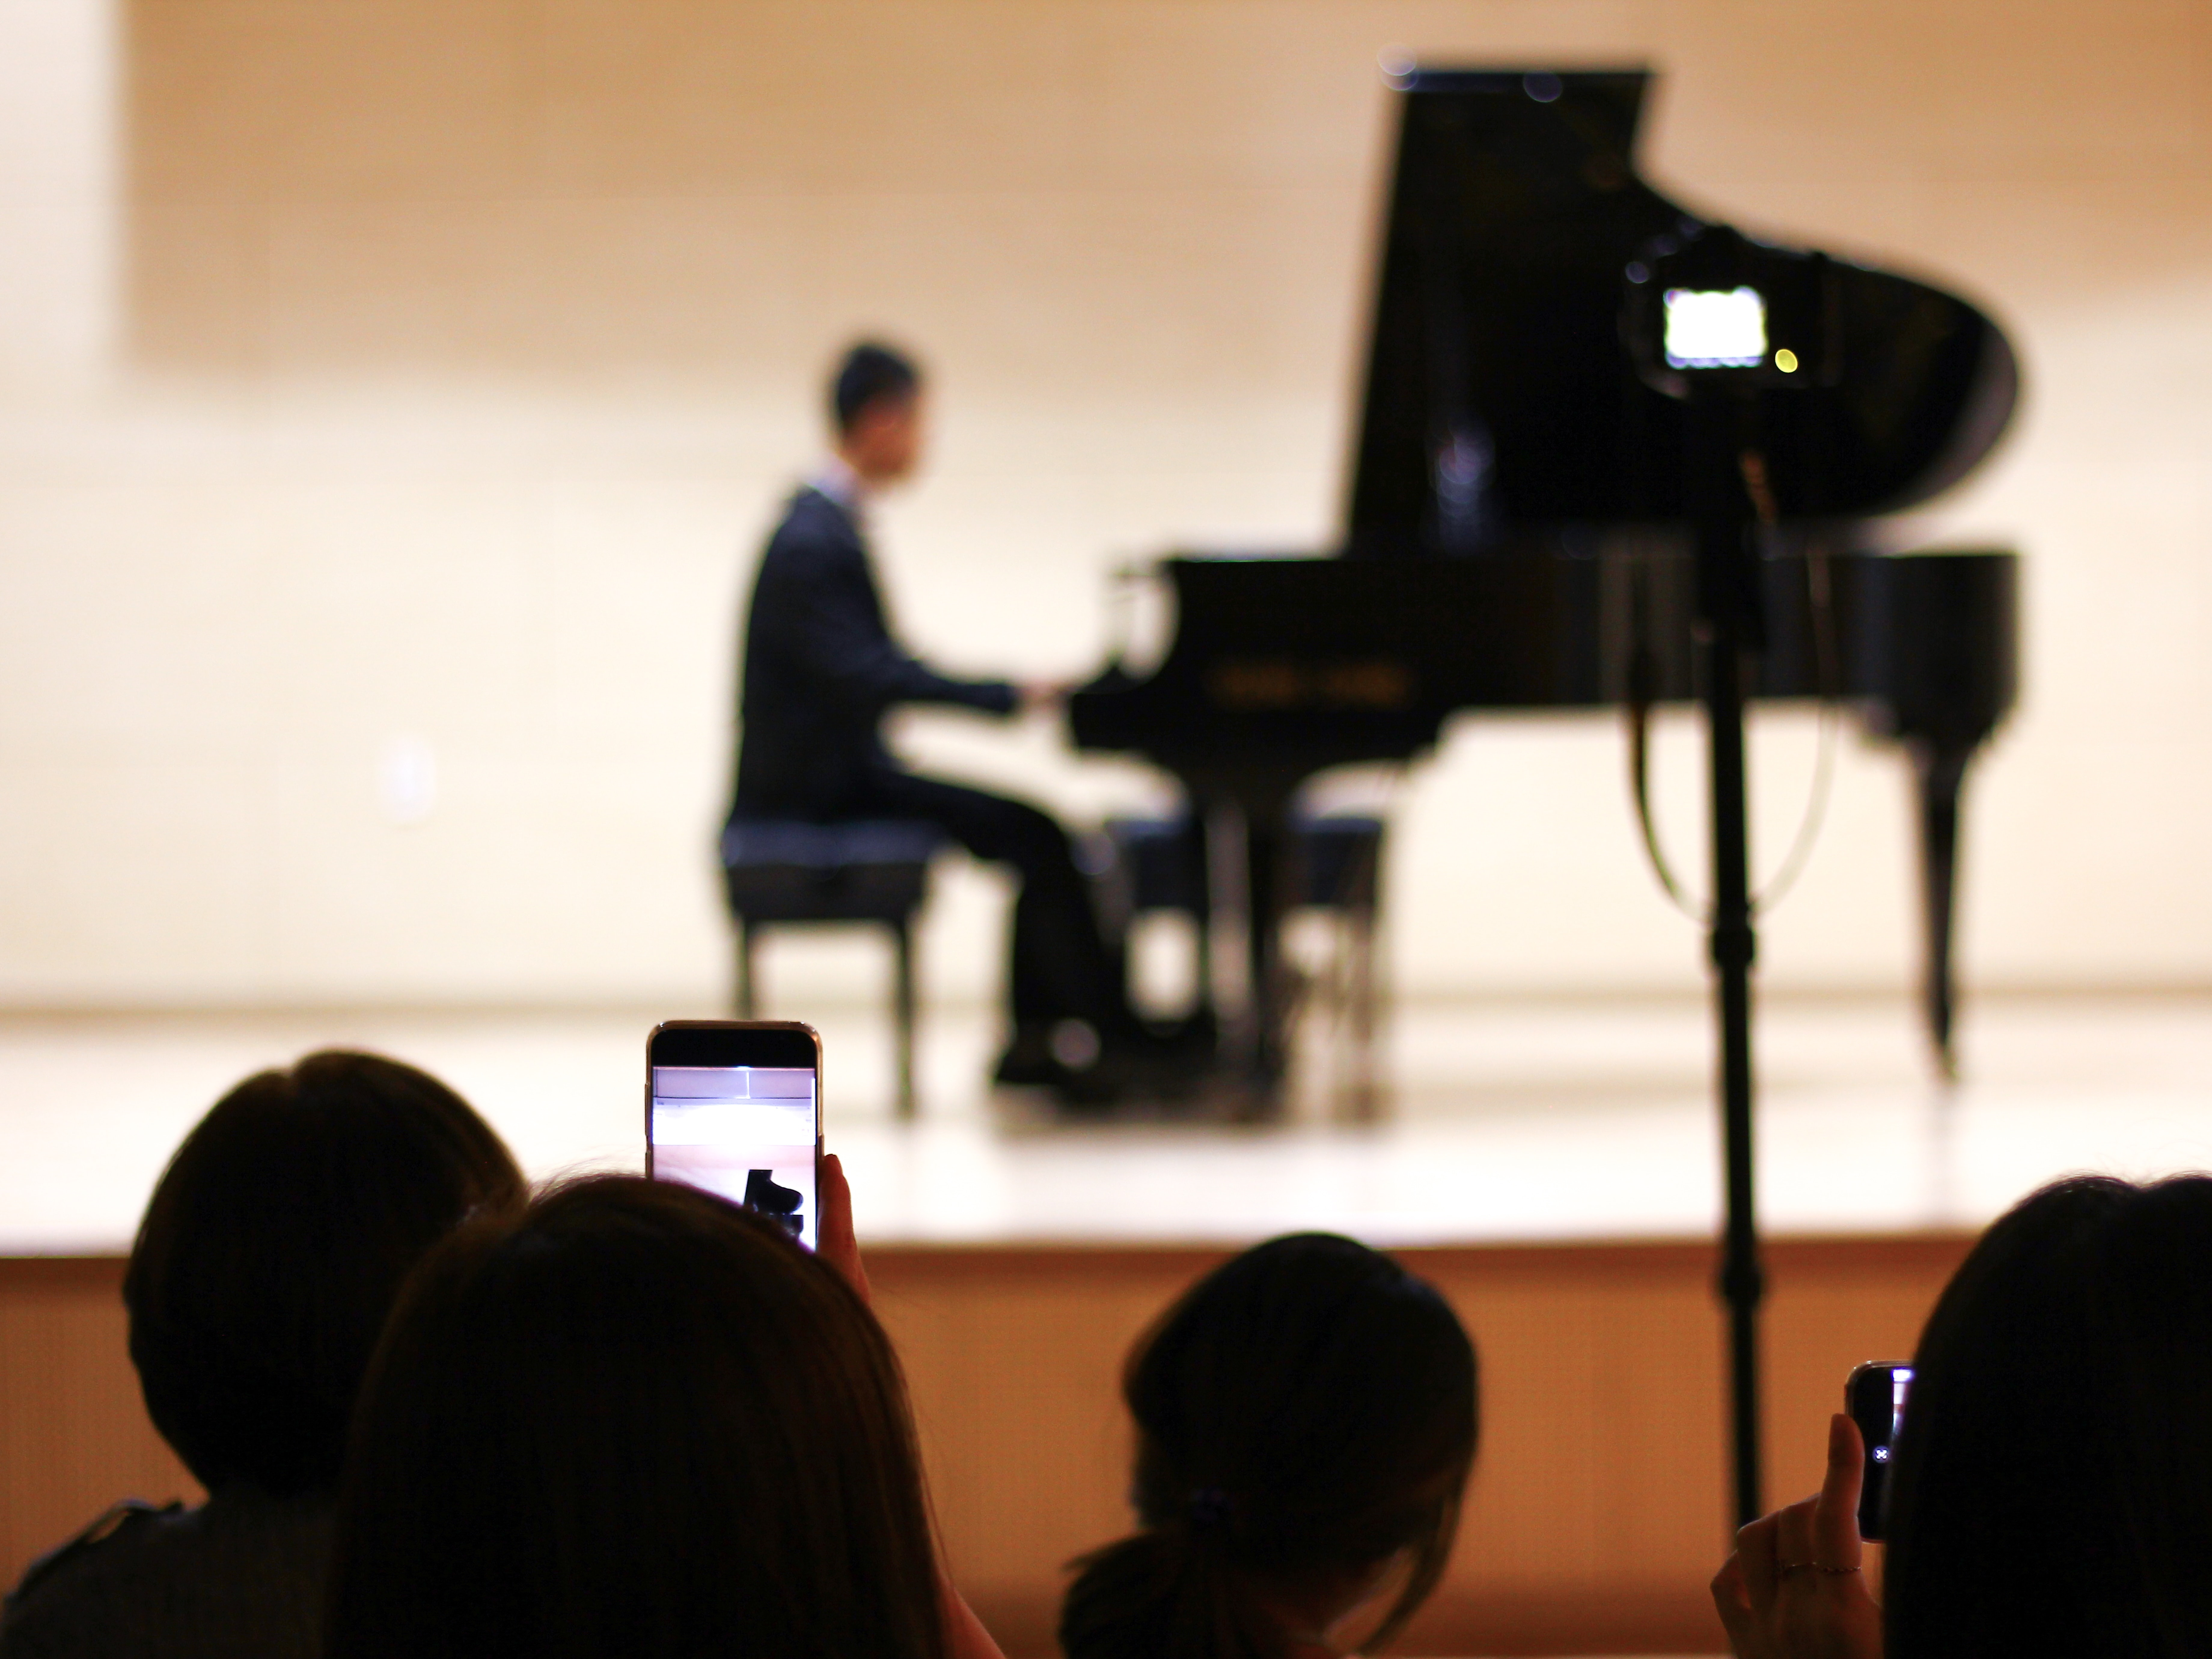 person taking photo of person playing piano on stage